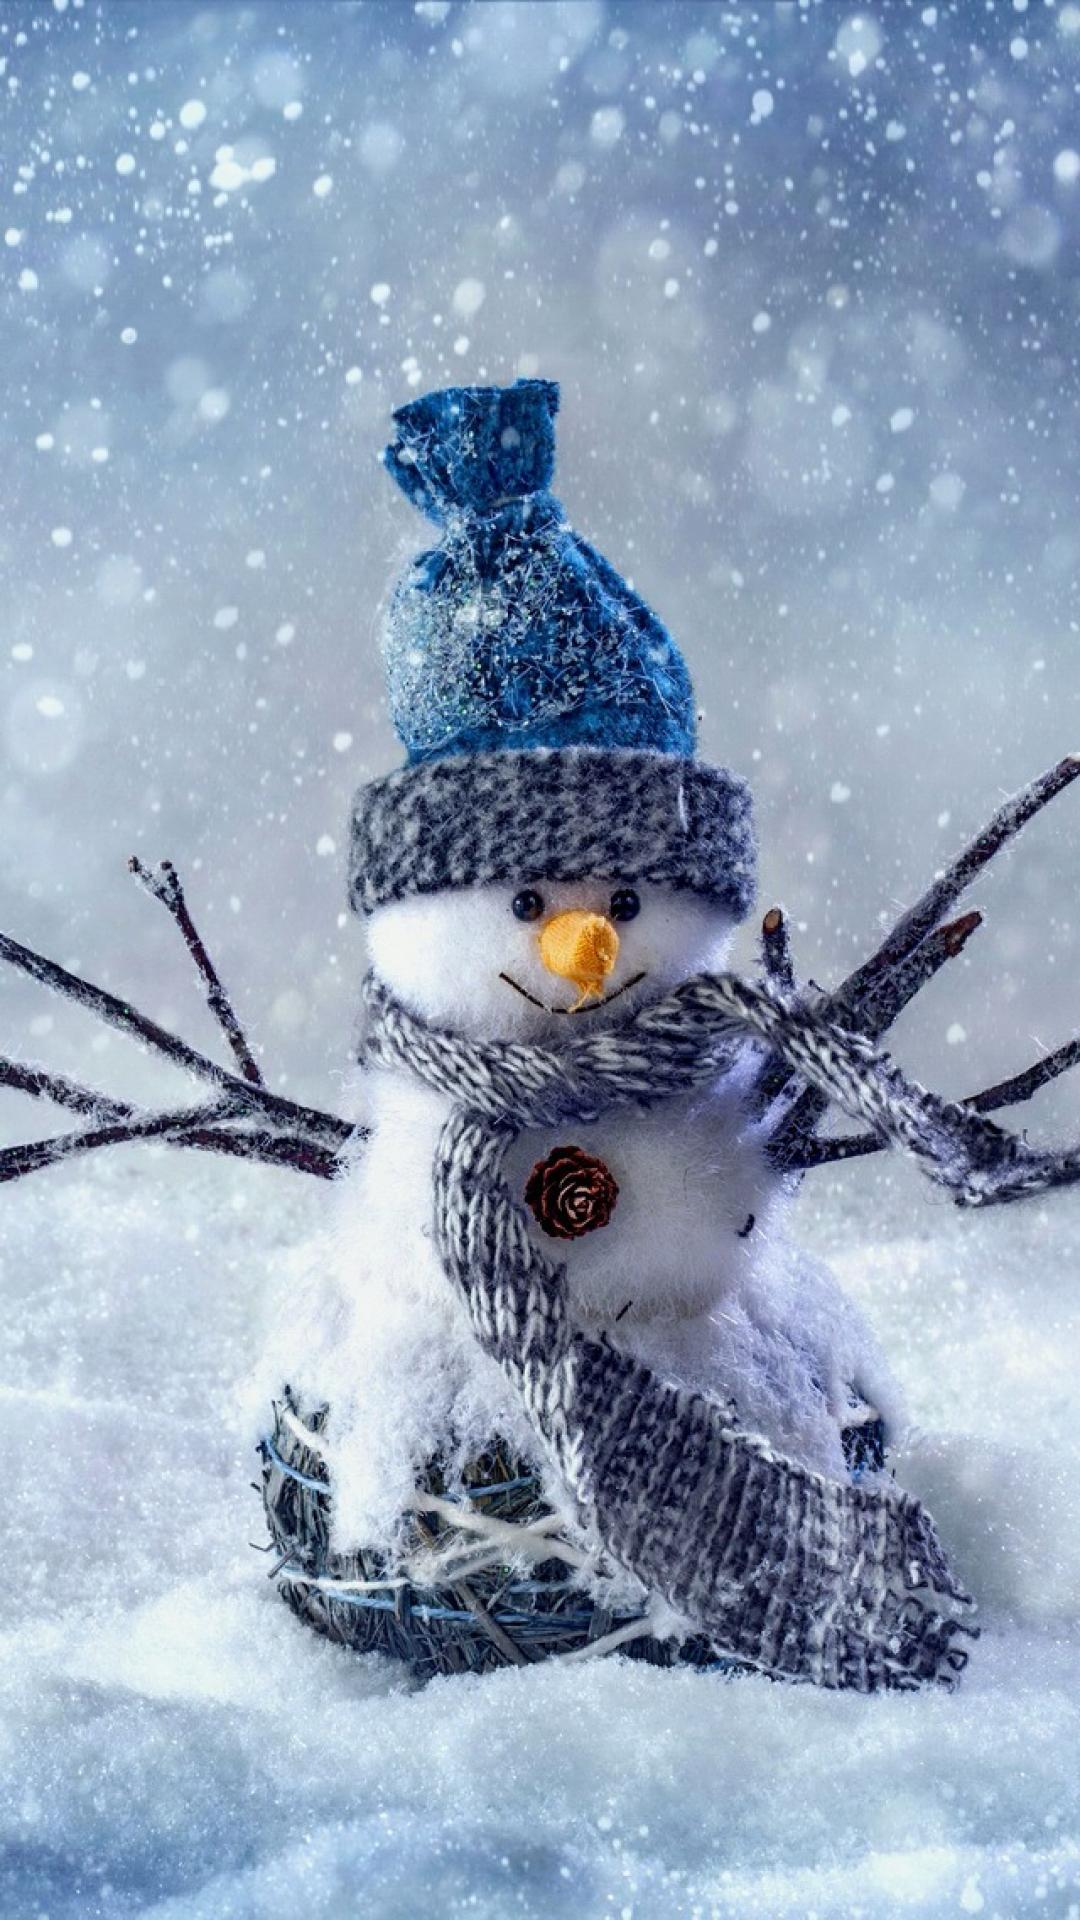 Snowman Cute winter iPhoneX wallpaper iPhone Wallpapers 1080x1920